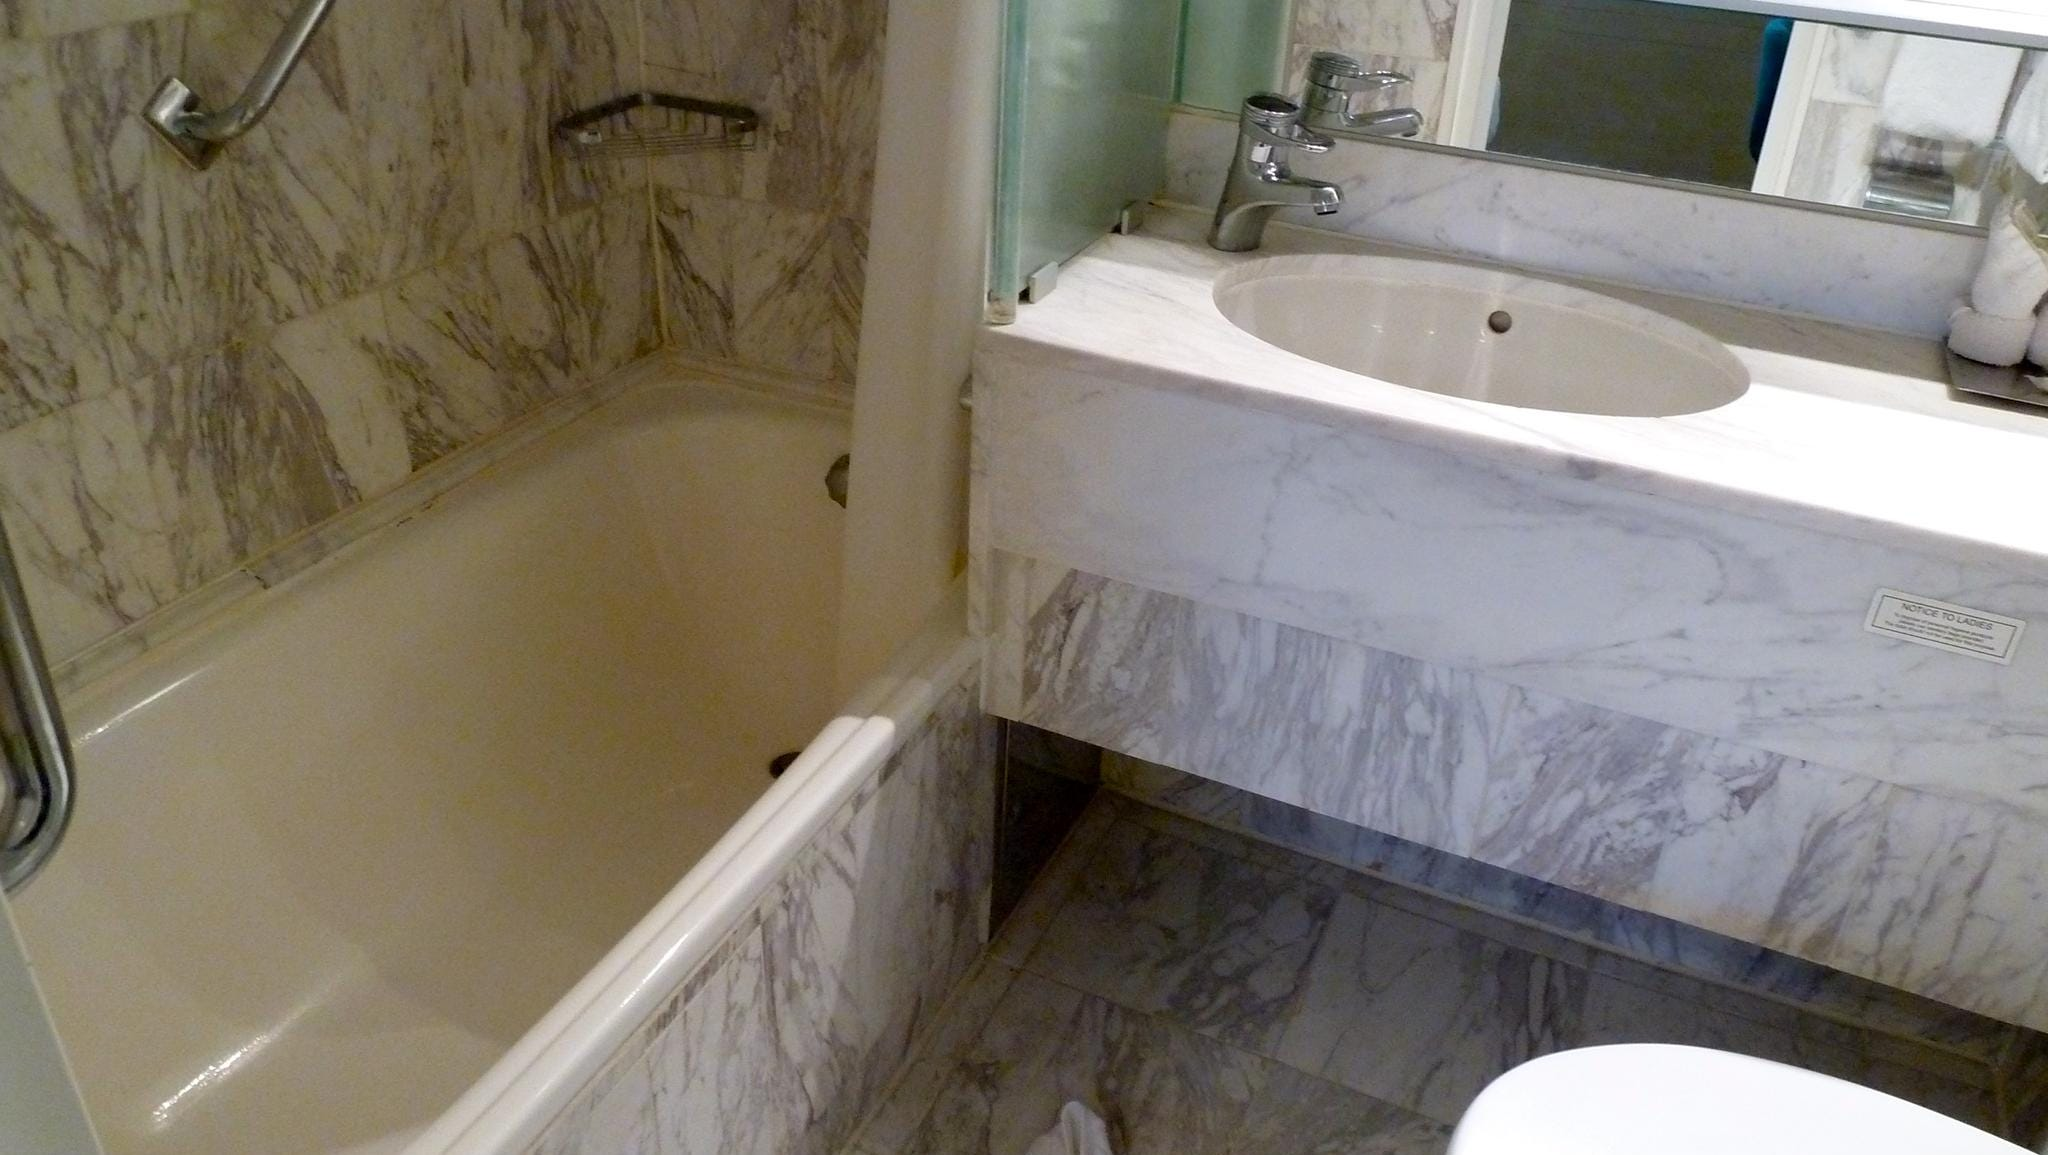 Both DS Deluxe Suites have marble-topped bathrooms with full tubs.